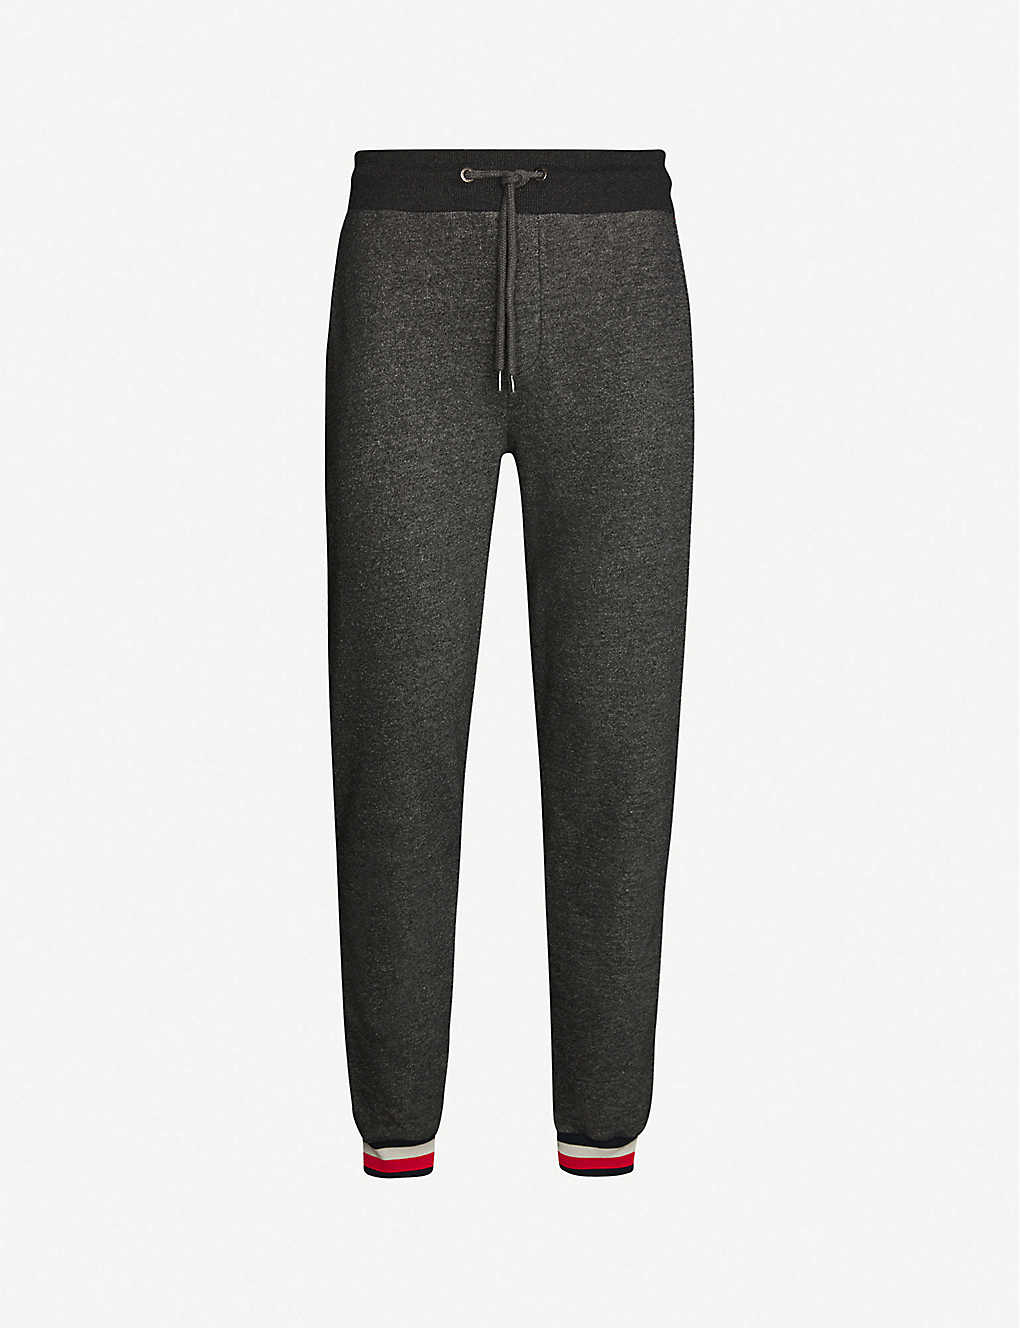 TOMMY HILFIGER: Tapered recycled polyester jogger bottoms